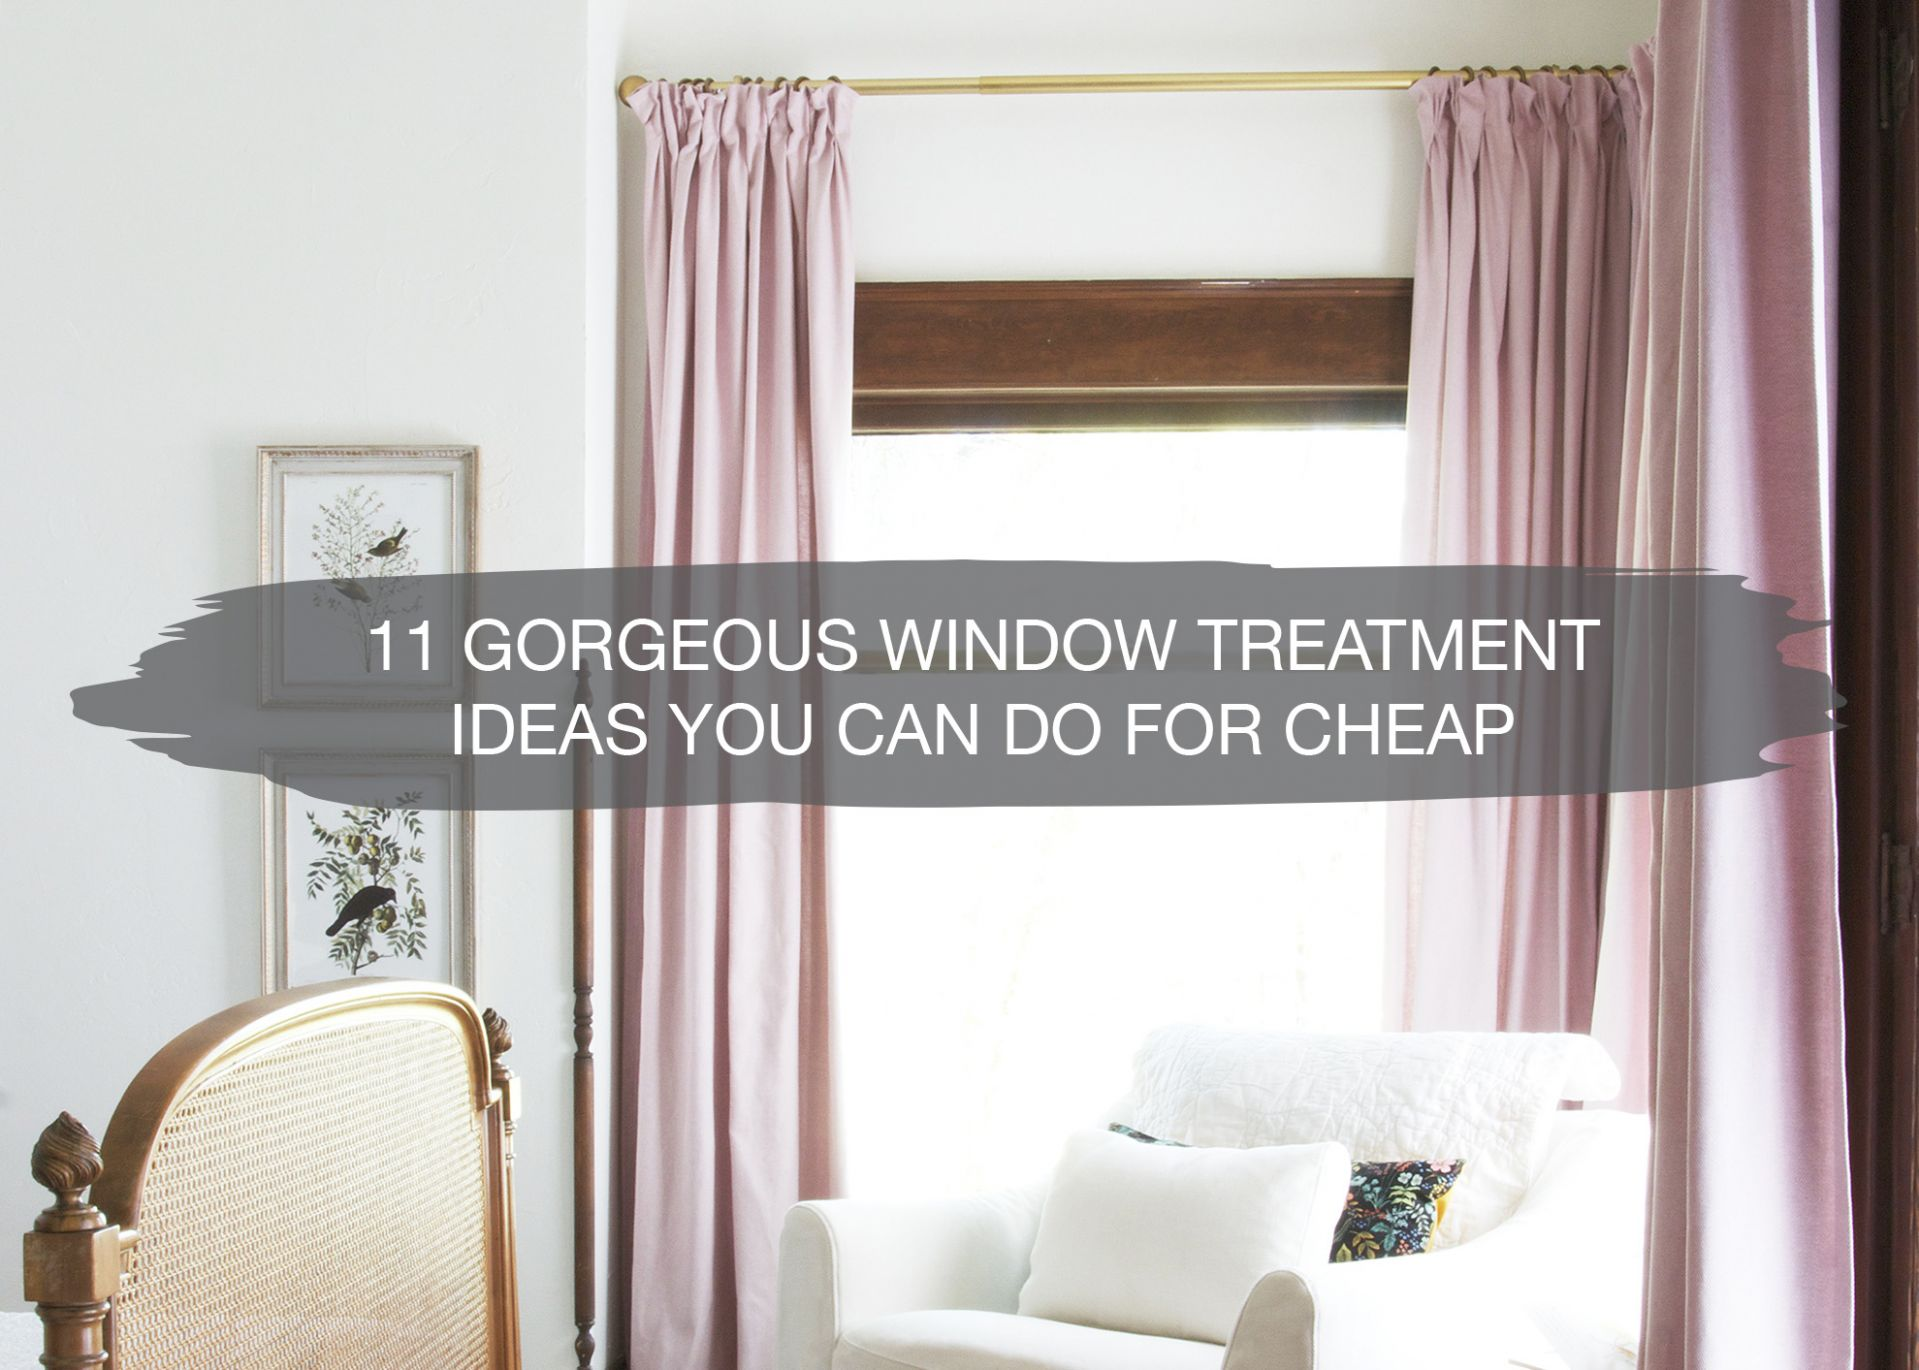 10 DIY Window Treatment Ideas   Cheap Upgrades For Your Home